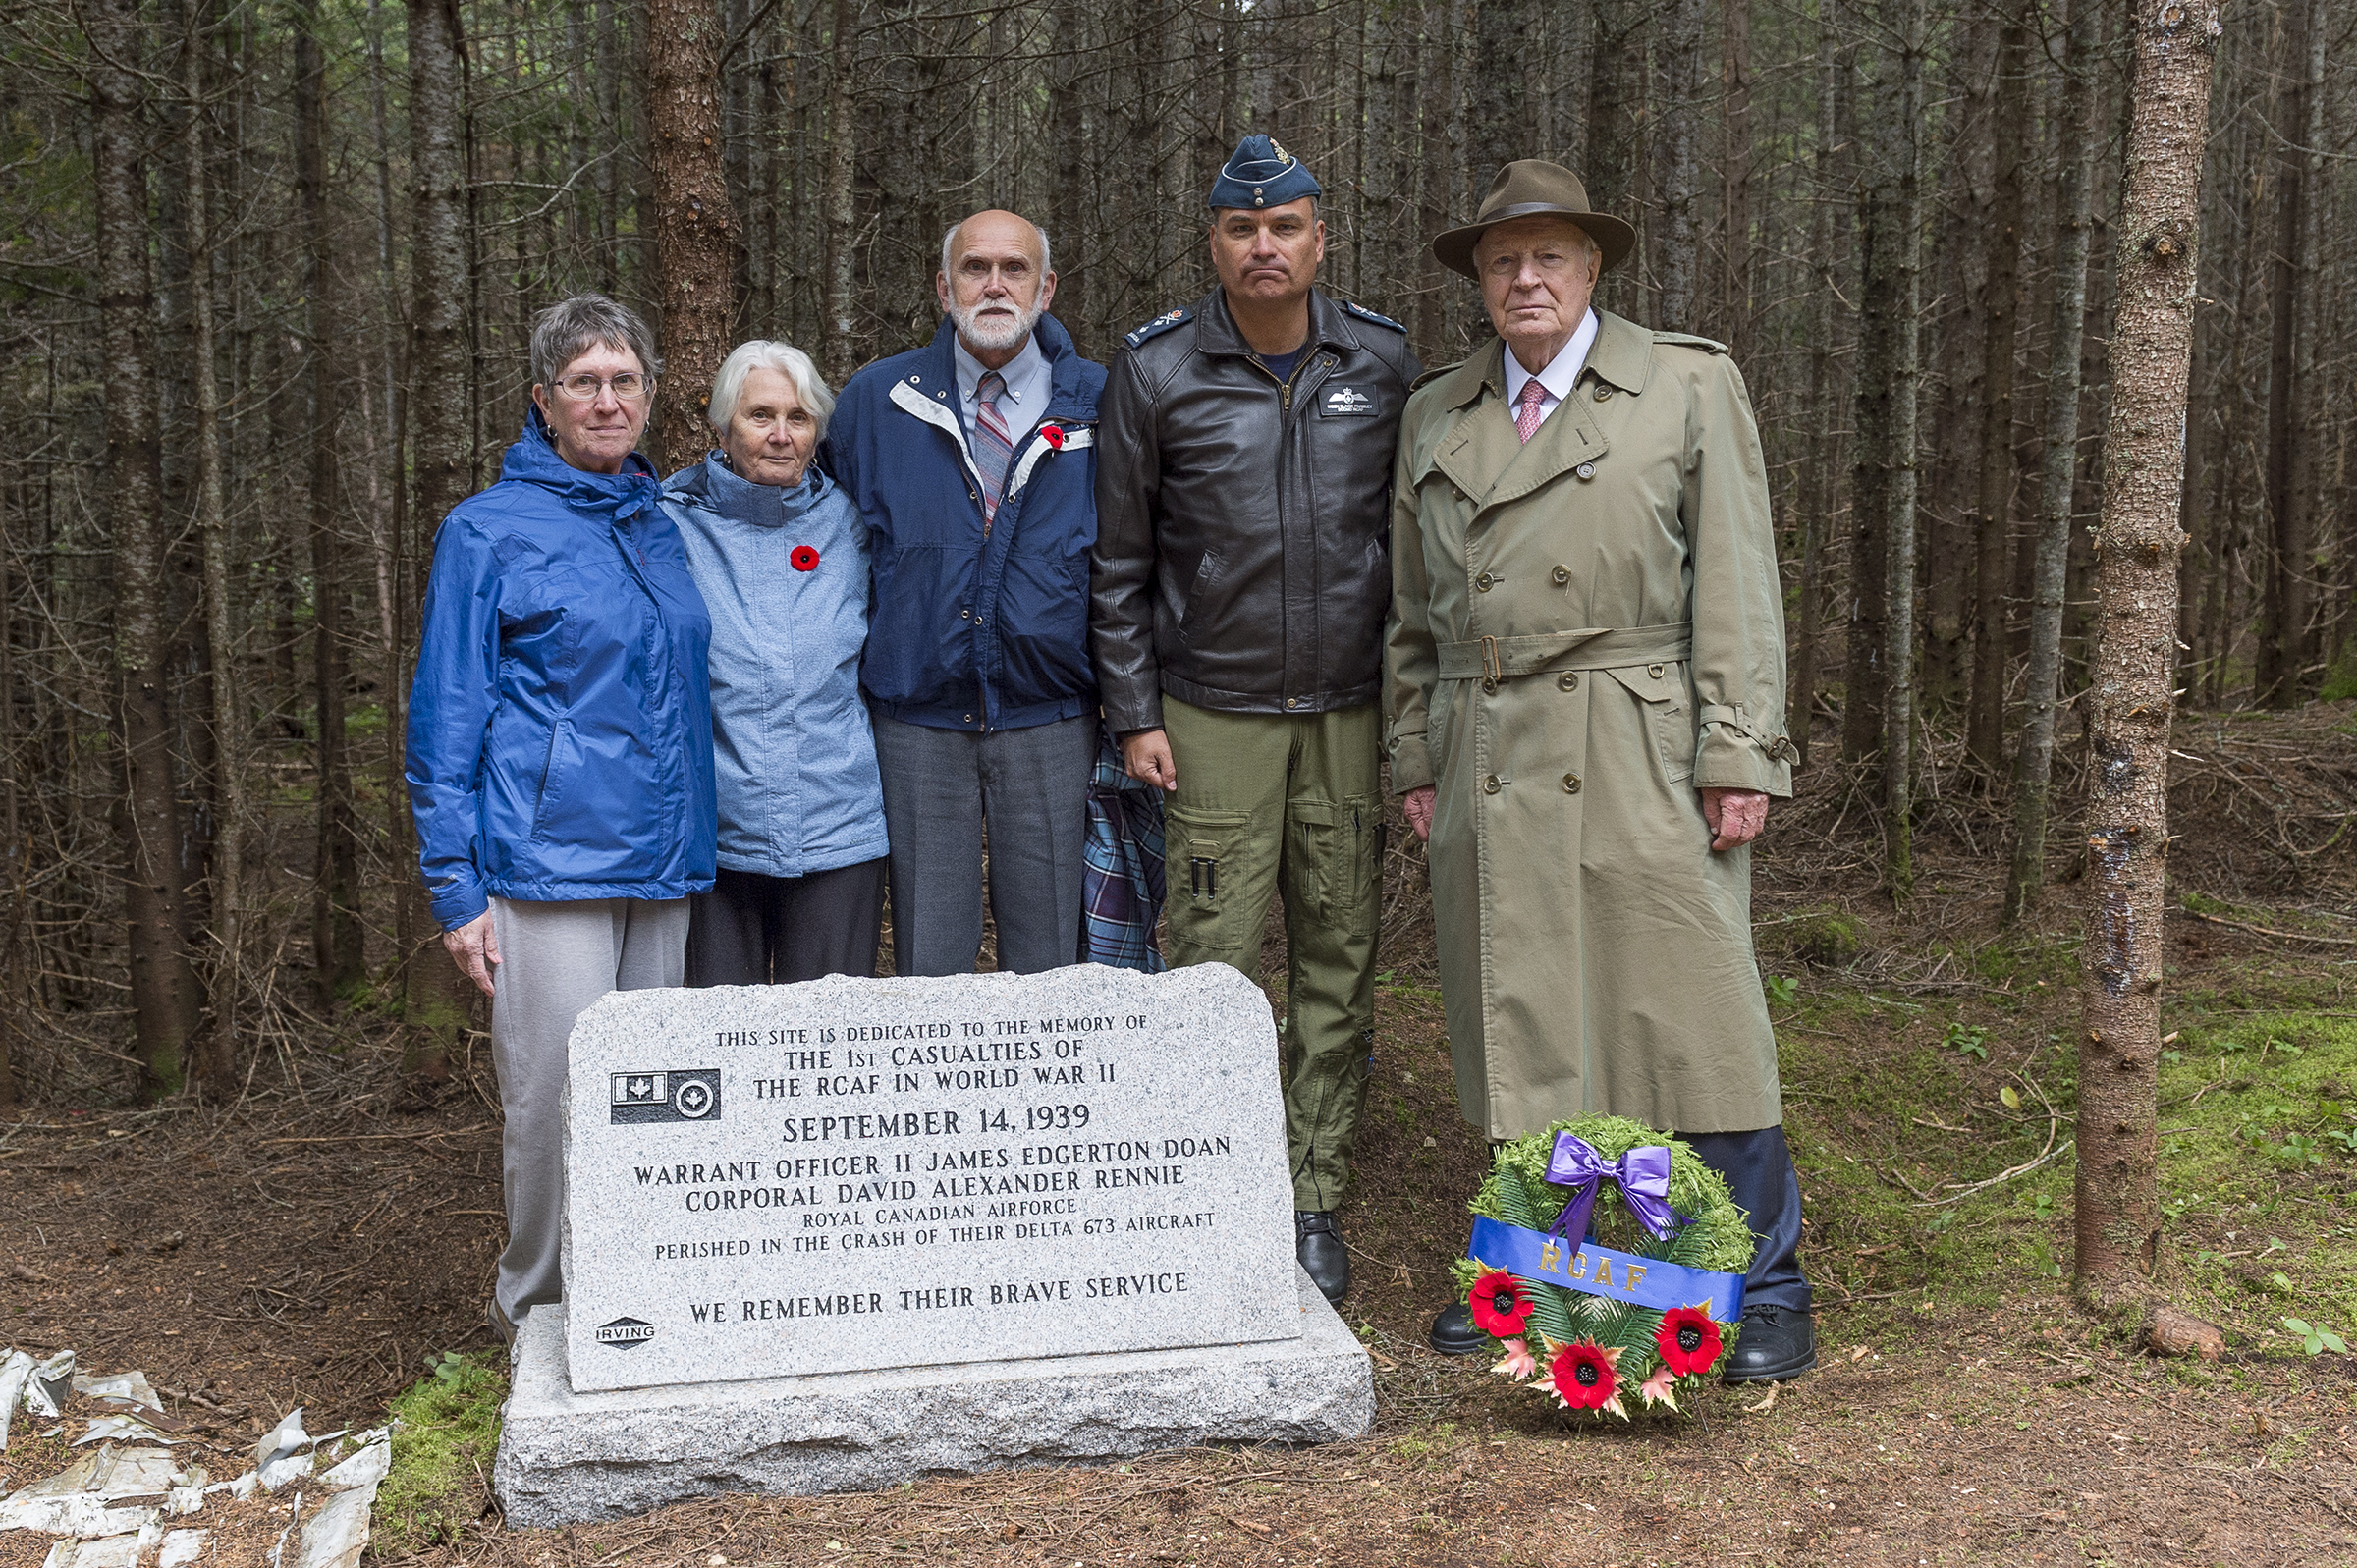 On September 14, 2019, (from left) Walter Bateson, Lynda Diepold, Shirley Routliffe, Major-General Blaise Frawley and Mr. J.K. Irving stand behind the new monument commemorating Warrant Officer Class 2 James Edward Doan and Corporal David Alexander Rennie who died on September 14, 1939, when their Northrop Delta aircraft crashed near Plaster Rock, New Brunswick. PHOTO: Corporal Nicolas Alonso, GN02-2019-0949-019